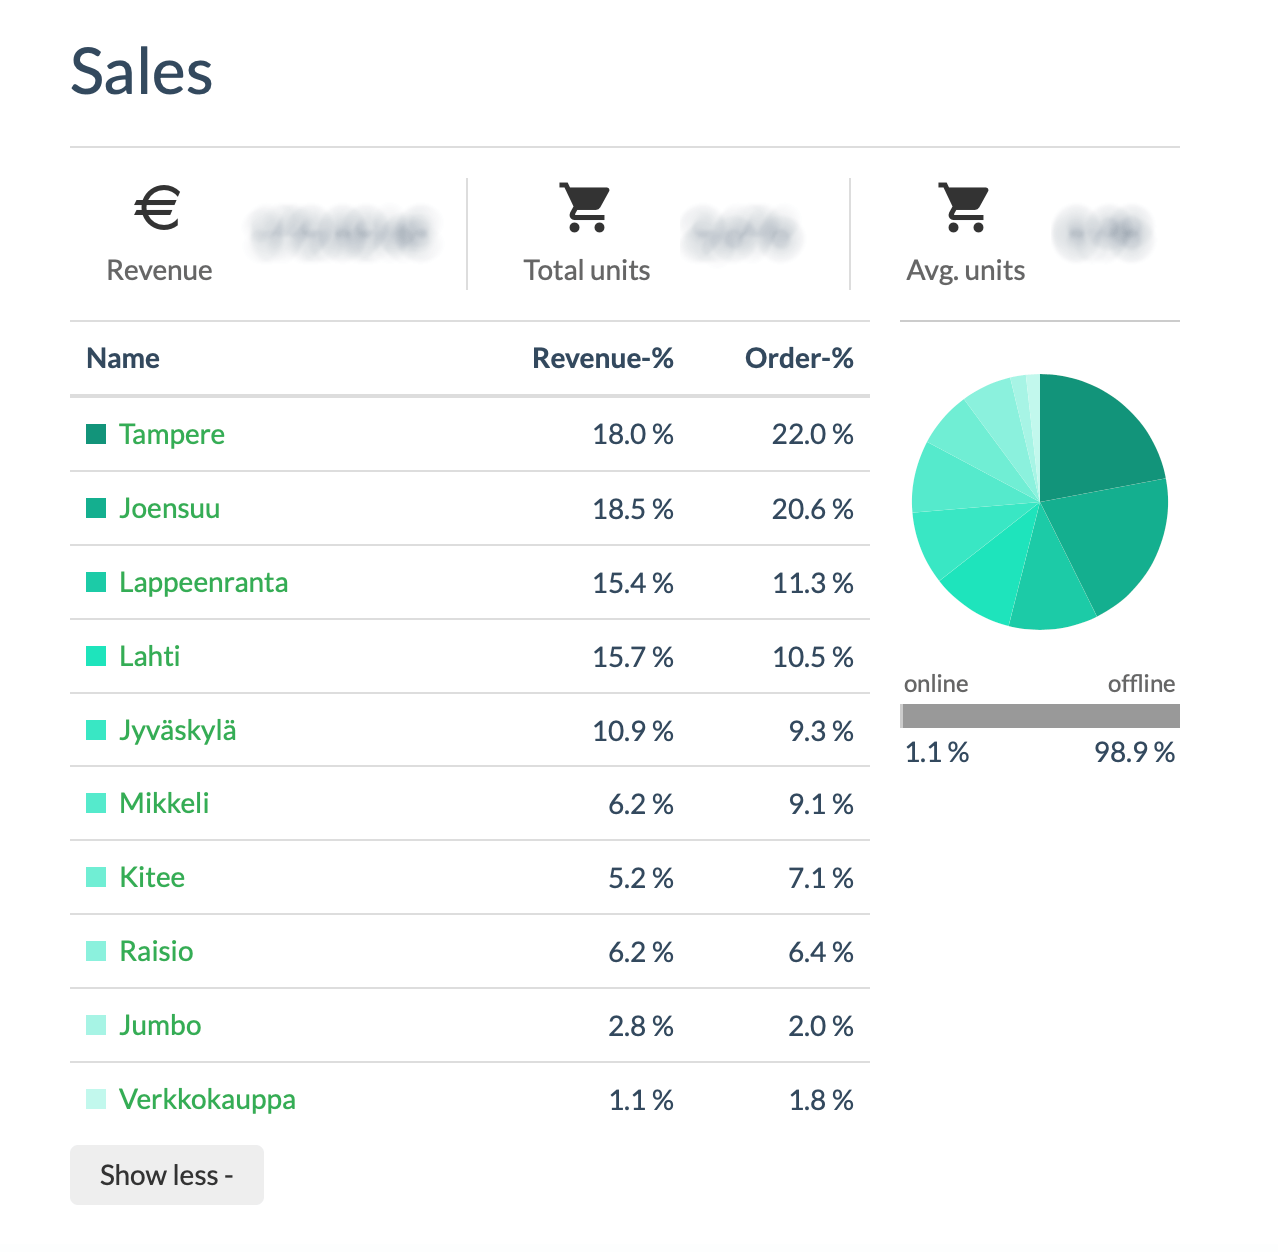 Sales by channels